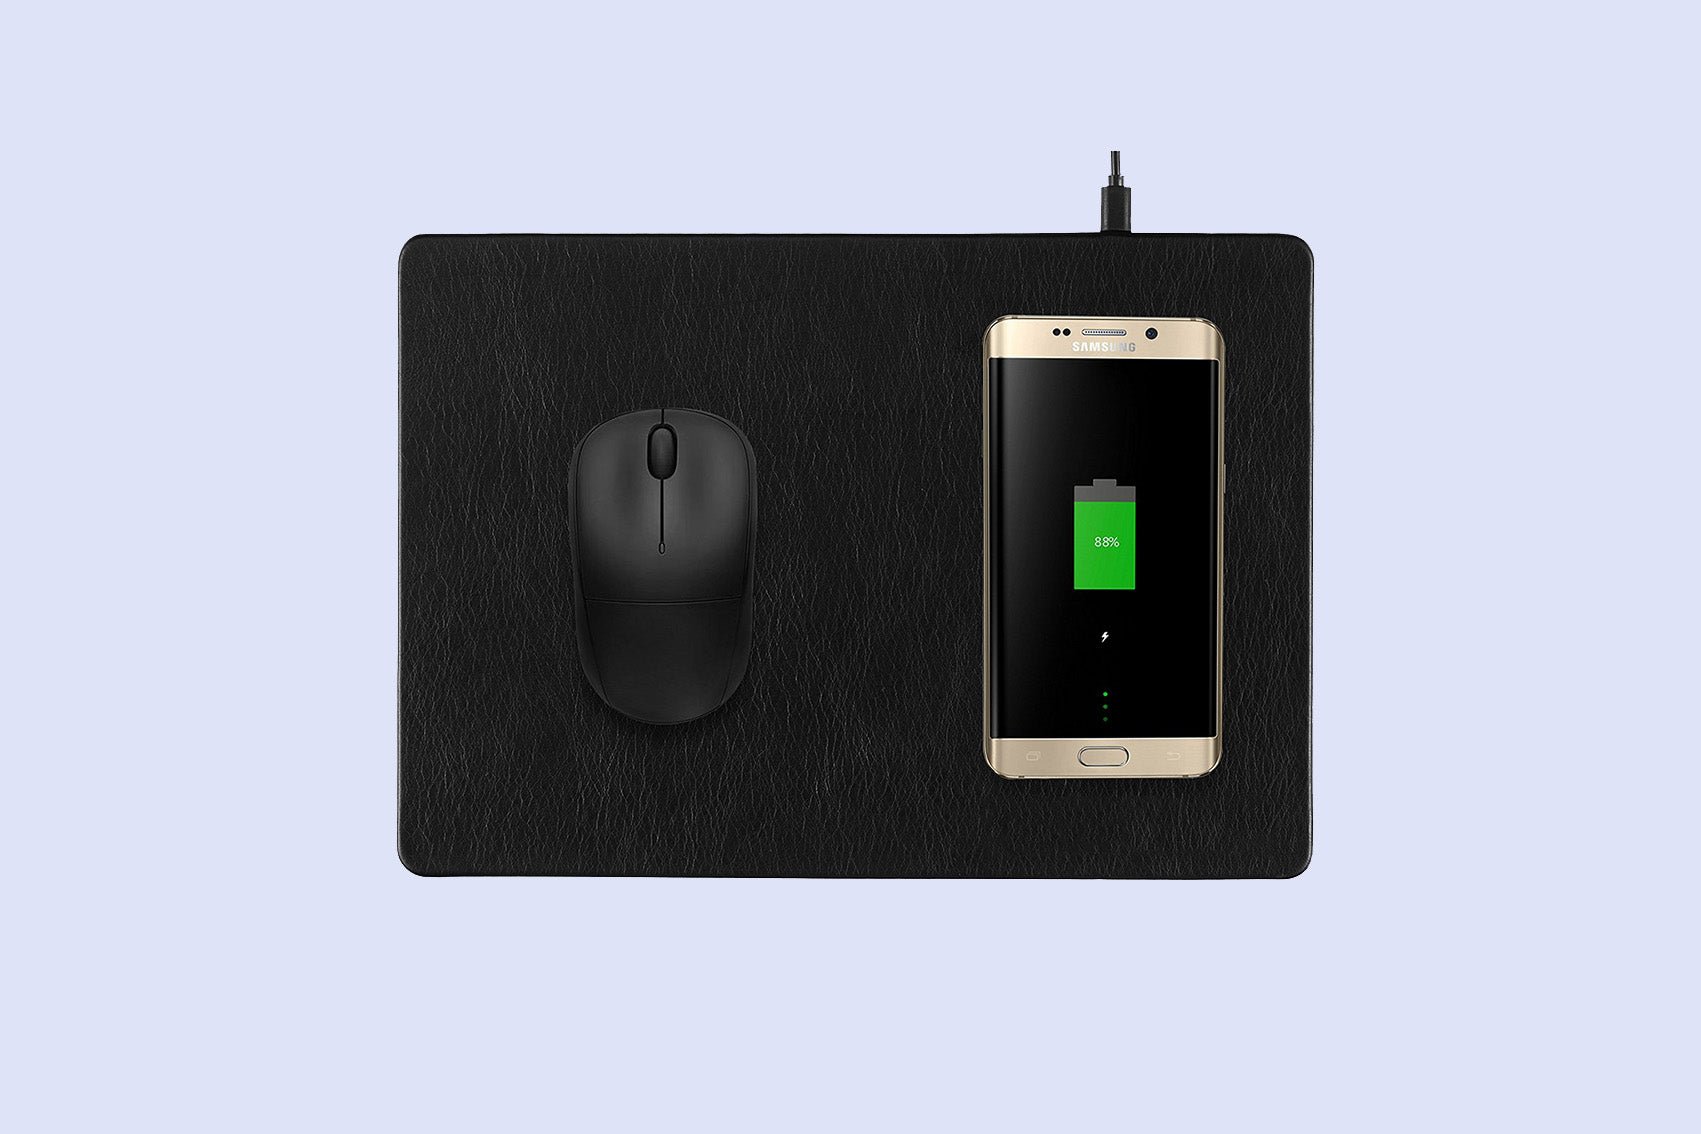 #32 cool gadgets for men: wireless charging mouse pad